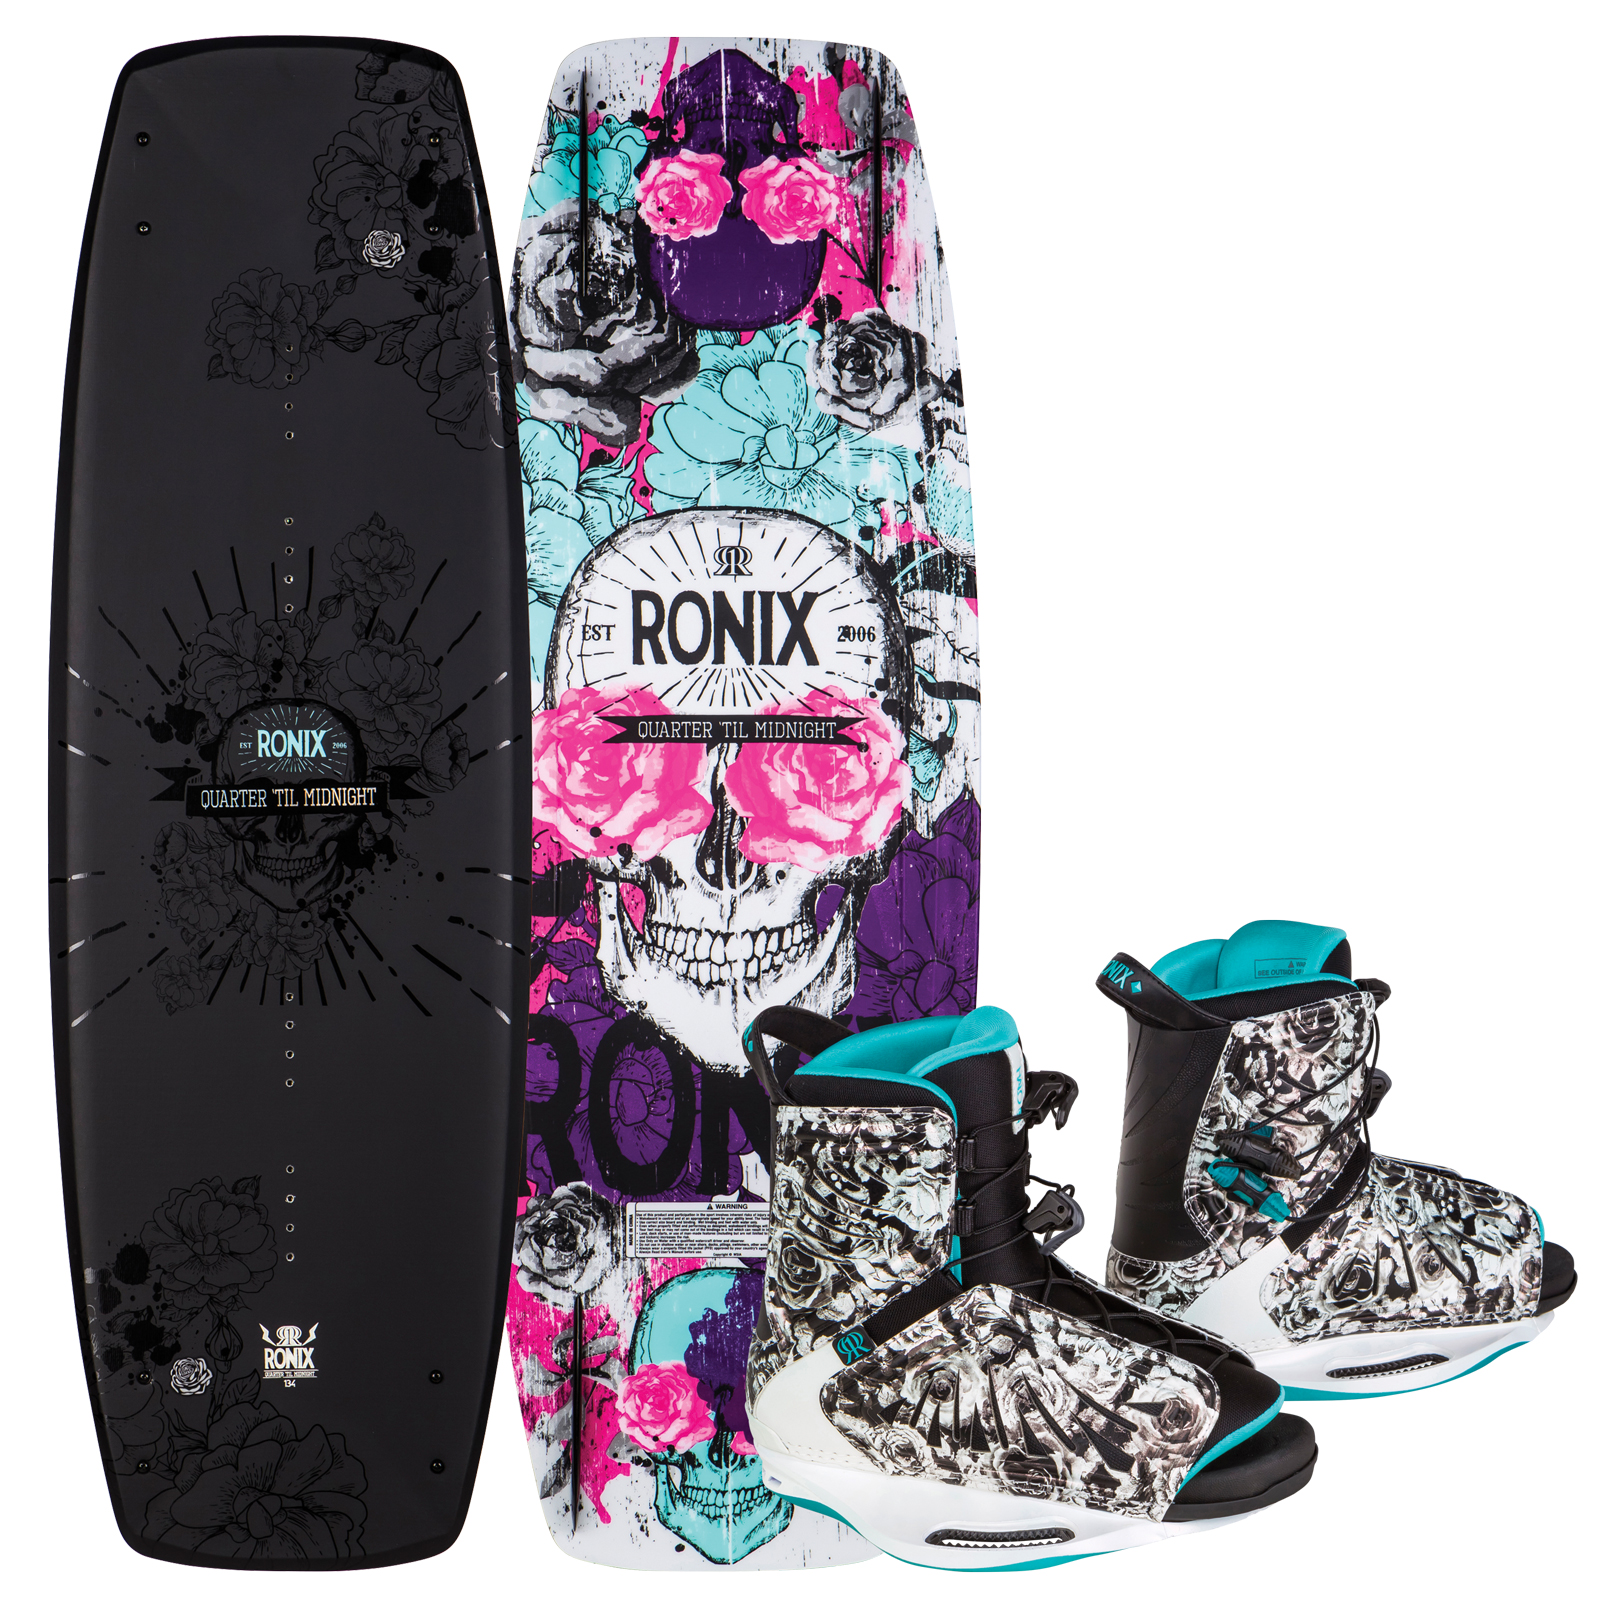 QUARTER 'TIL MIDNIGHT 129 W/ HALO PACKAGE RONIX 2017